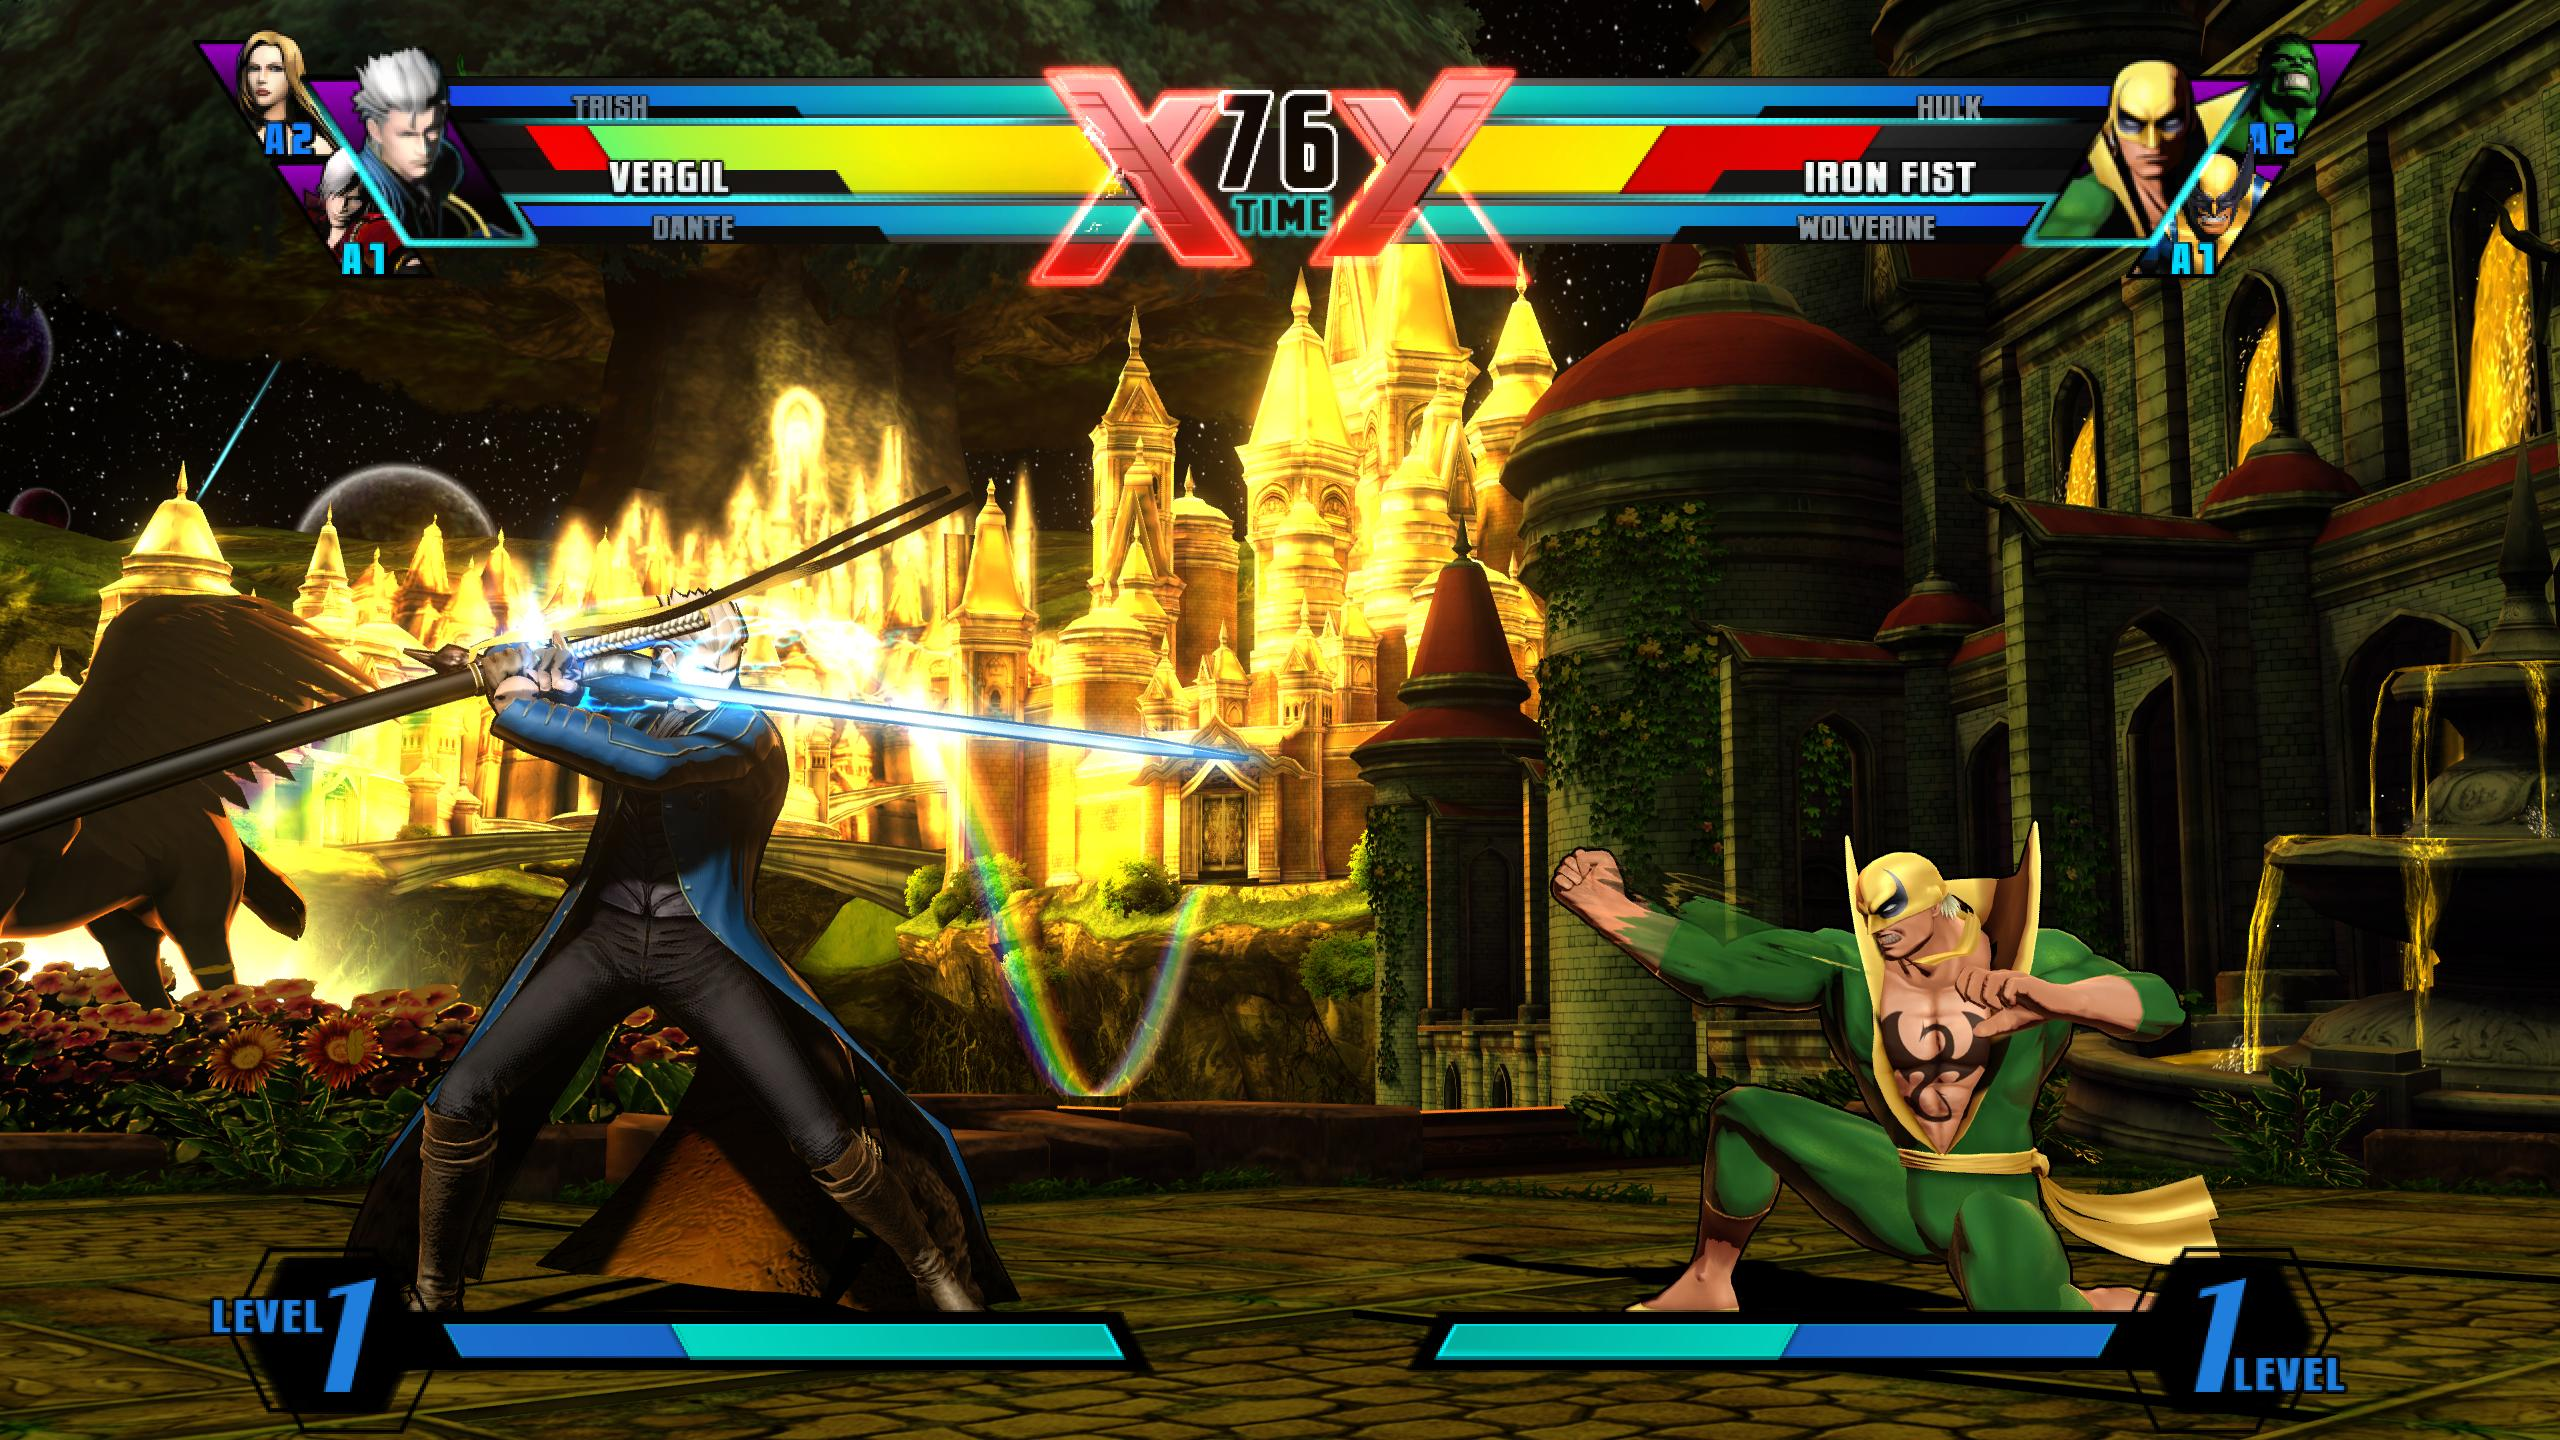 Vergil dans Ultimate Marvel vs. Capcom 3 6150571917_50f833e1f5_o